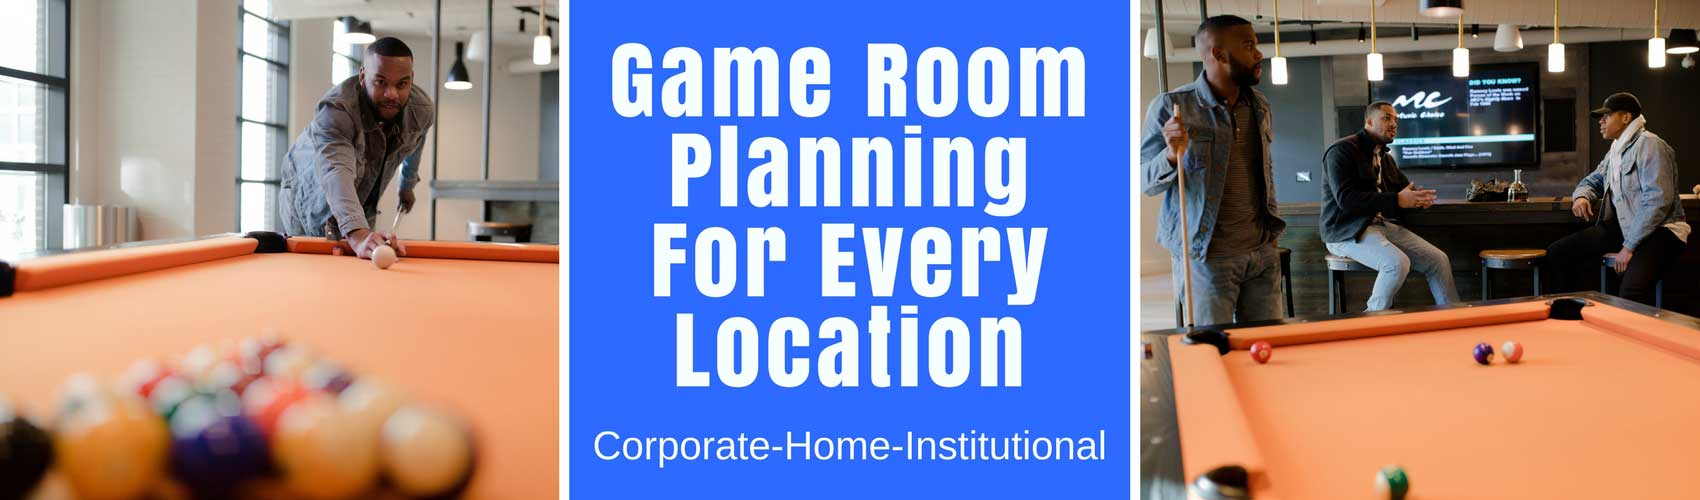 Game Room Planning